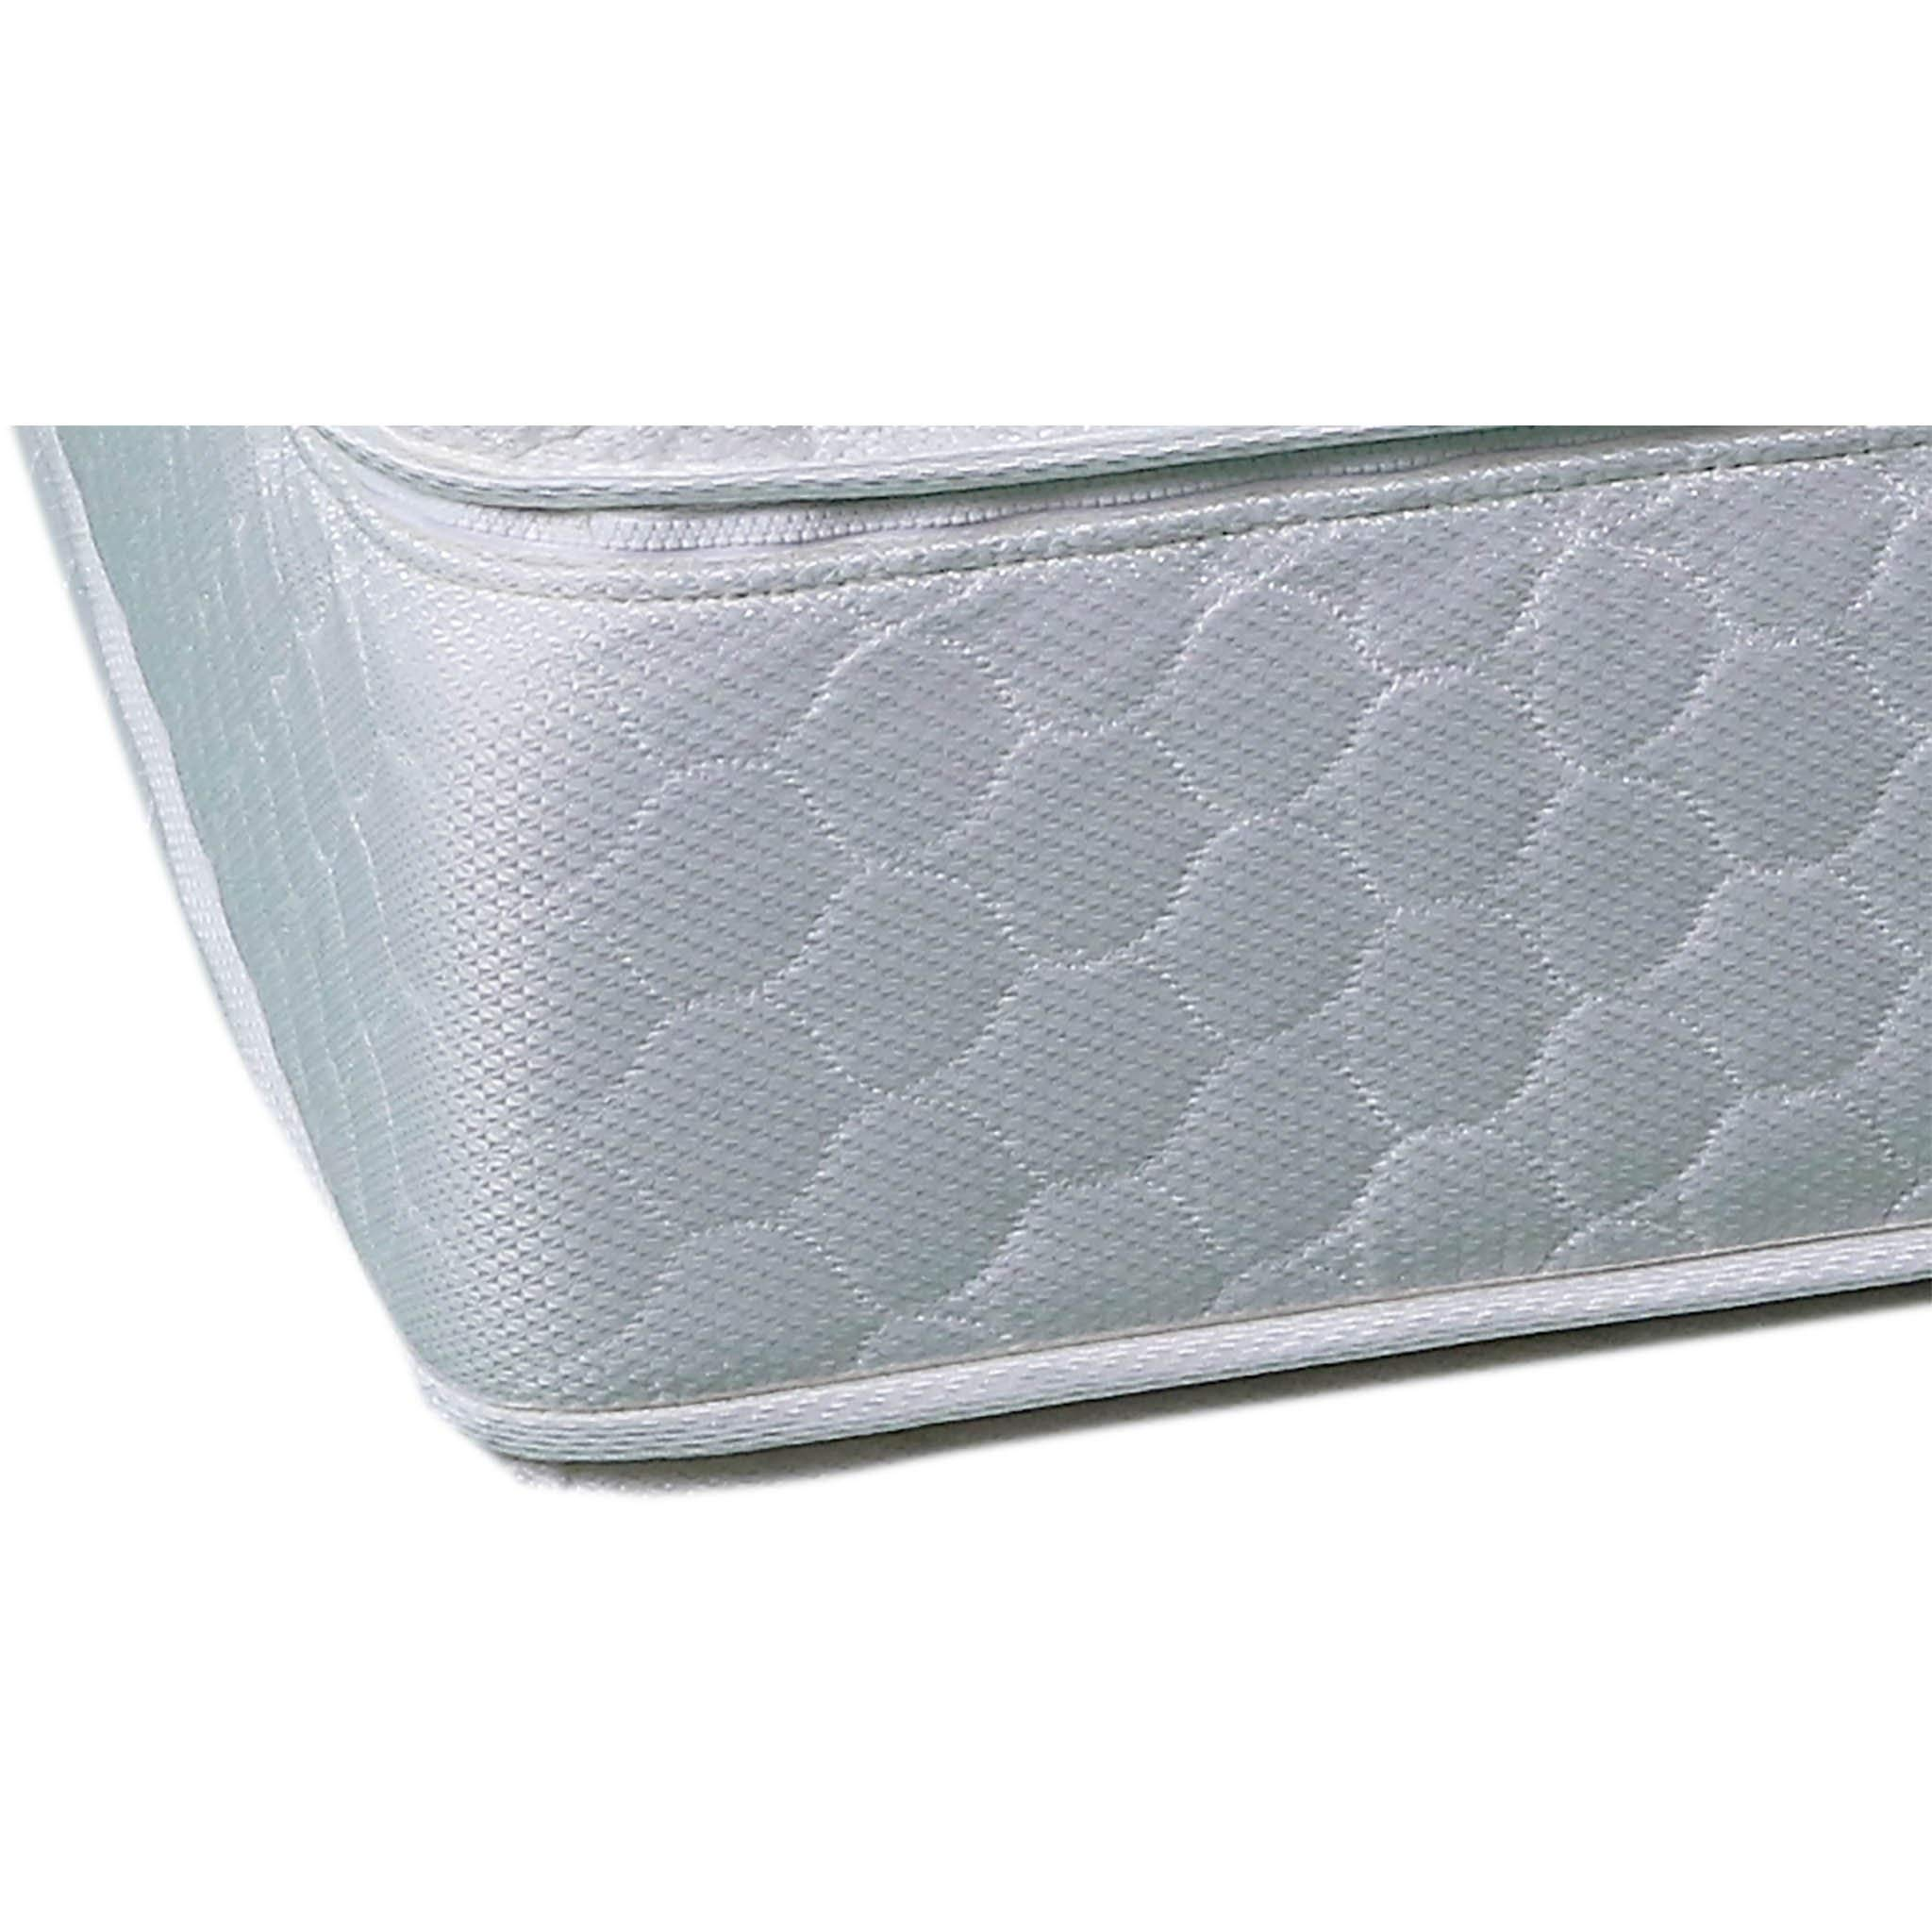 Zippered Sidewall Border & Bottom Assembly for Softside Waterbeds & Silver Lining Series Twin by Sterling Sleep System